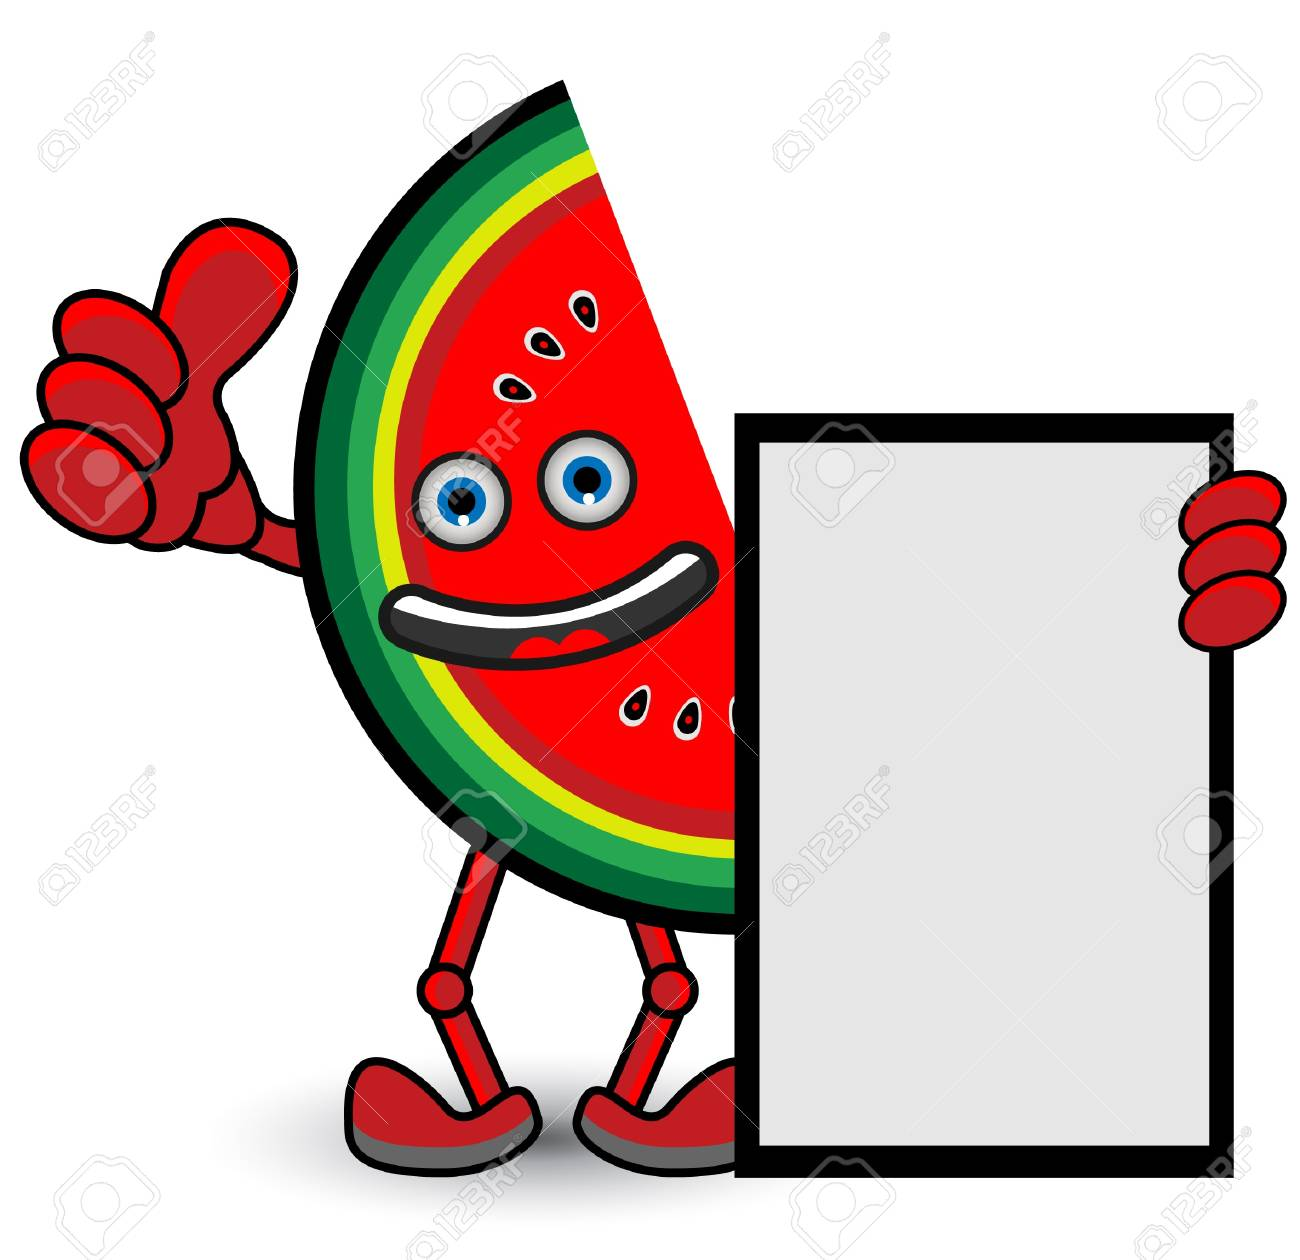 Watermelon Banner Thumb Up Pose Stock Vector - 13690340